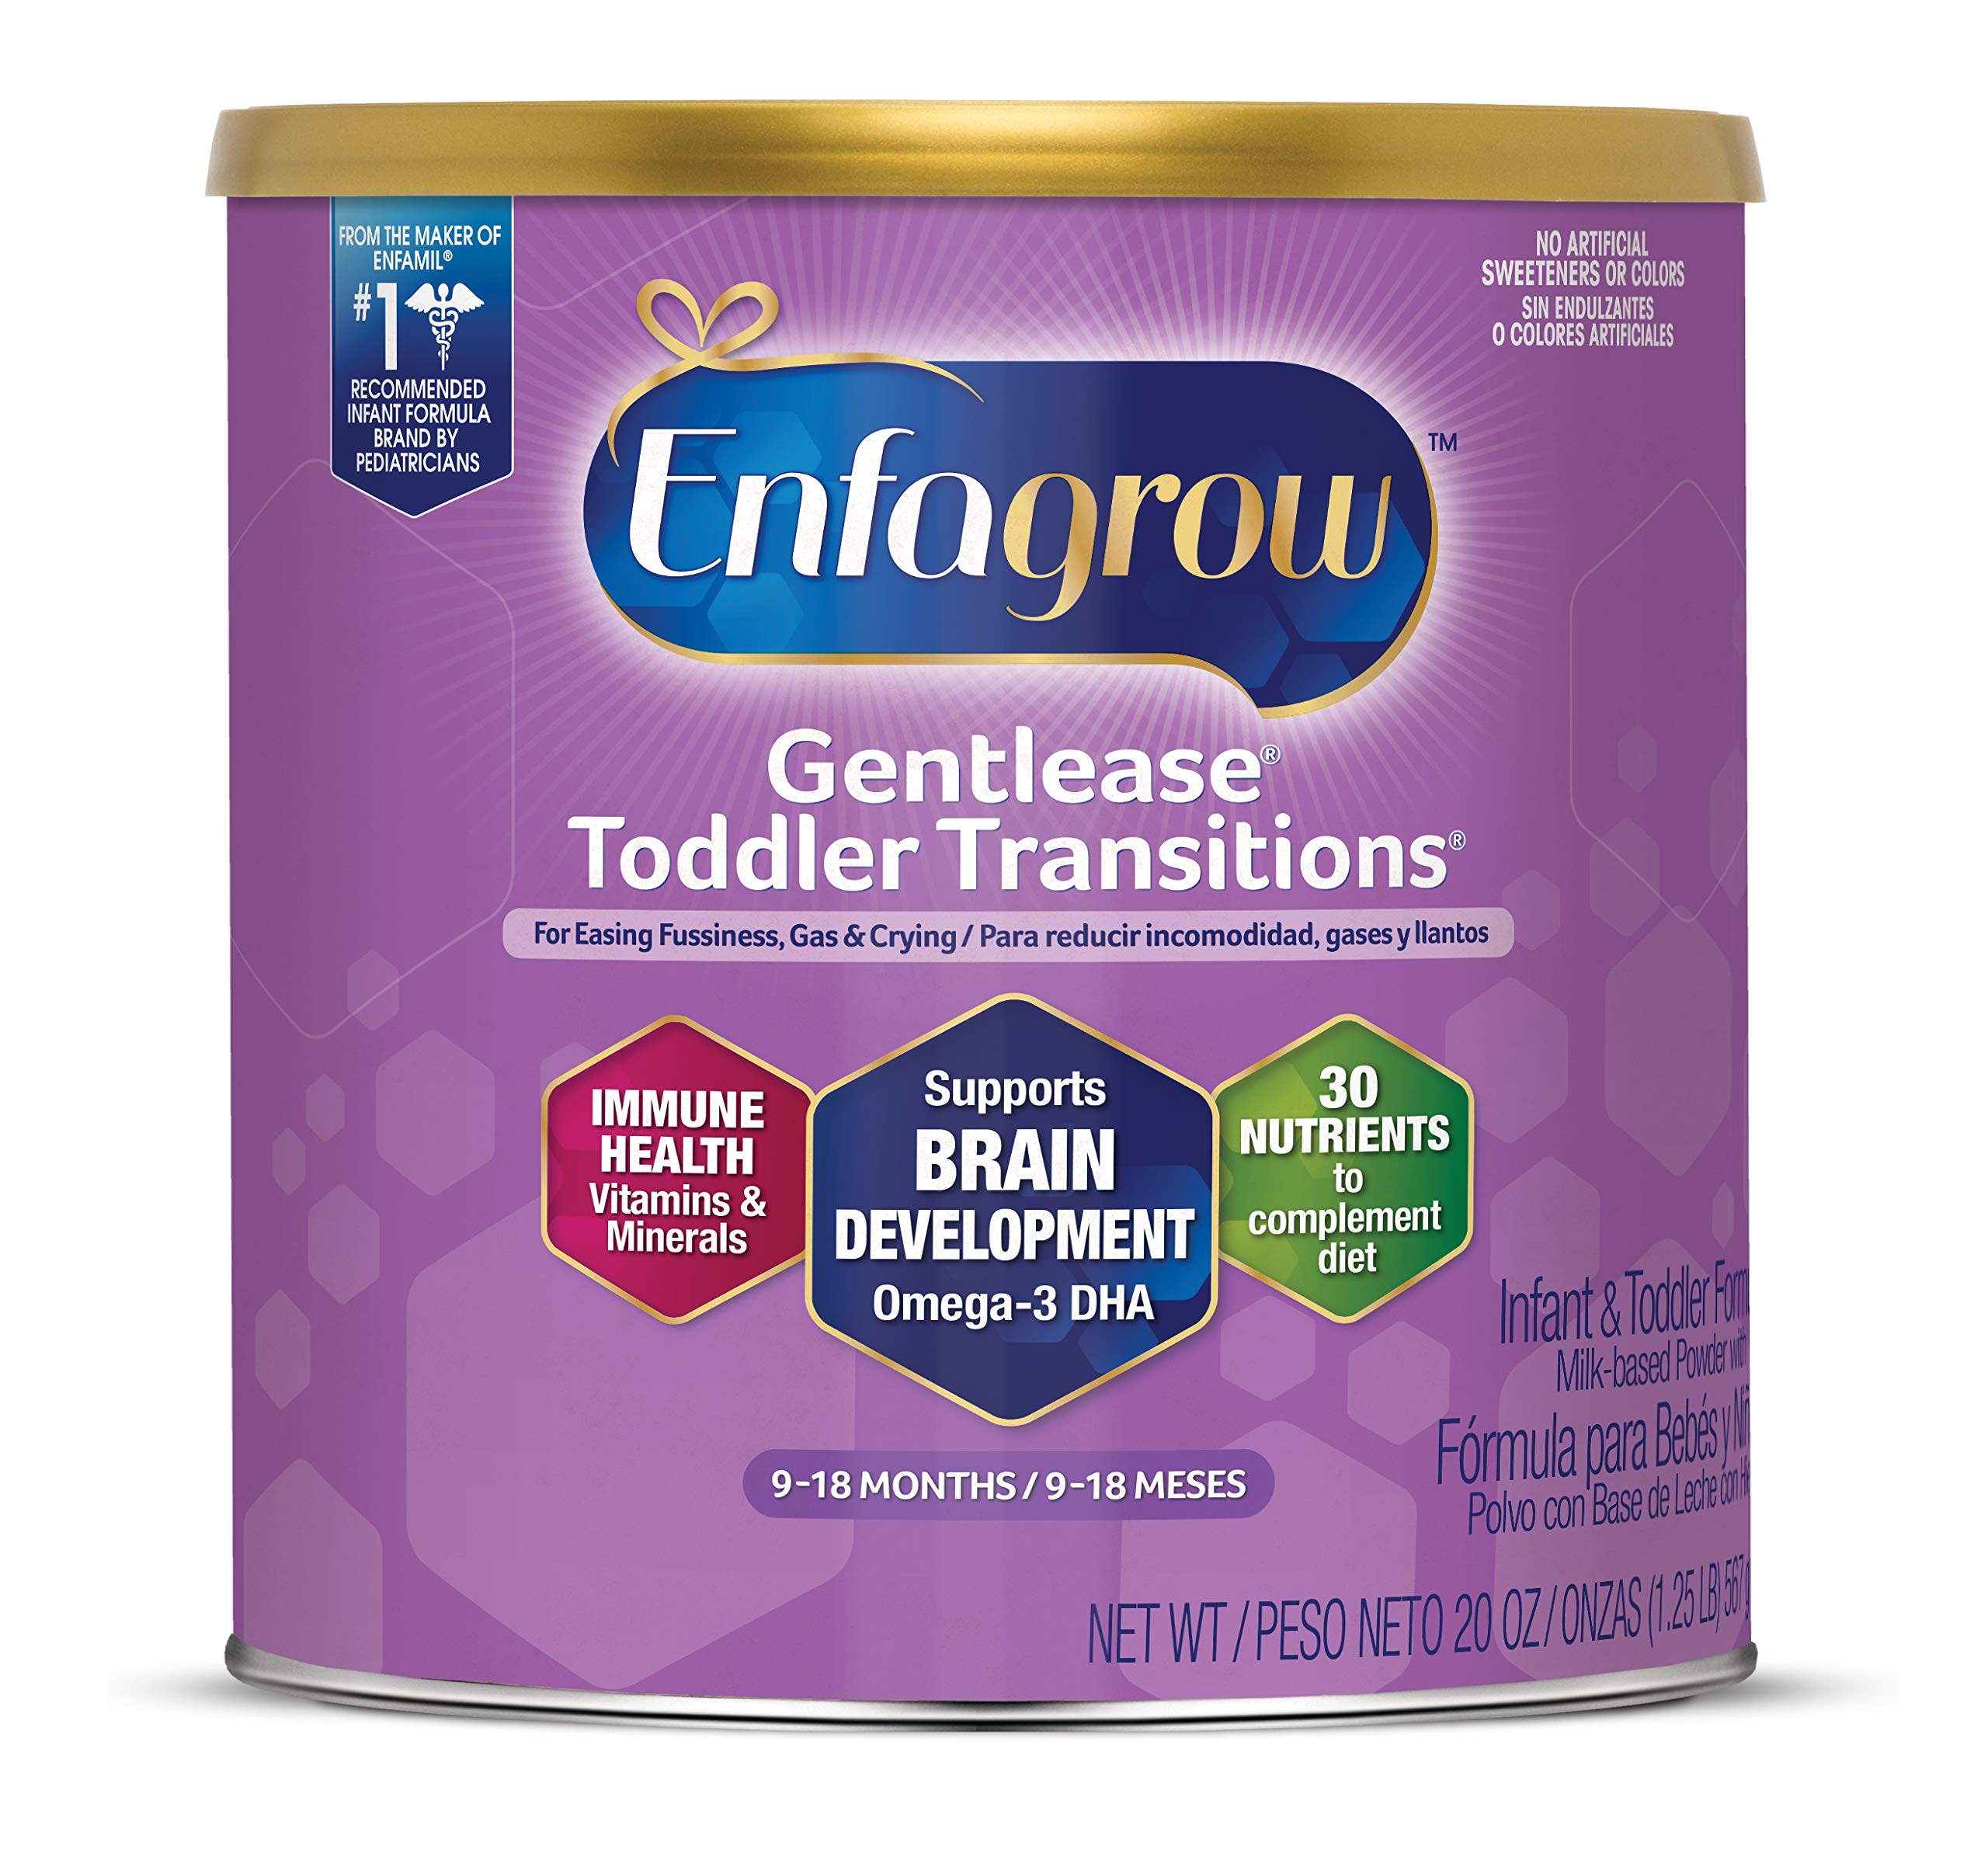 Enfagrow Gentlease Toddler Transitions Gentle Baby Formula Milk Powder, 20 oz Can - For Easing Gas & Crying, Easy-to_Digest Proteins, Omega 3 DHA, Iron, Vitamins & MInerals